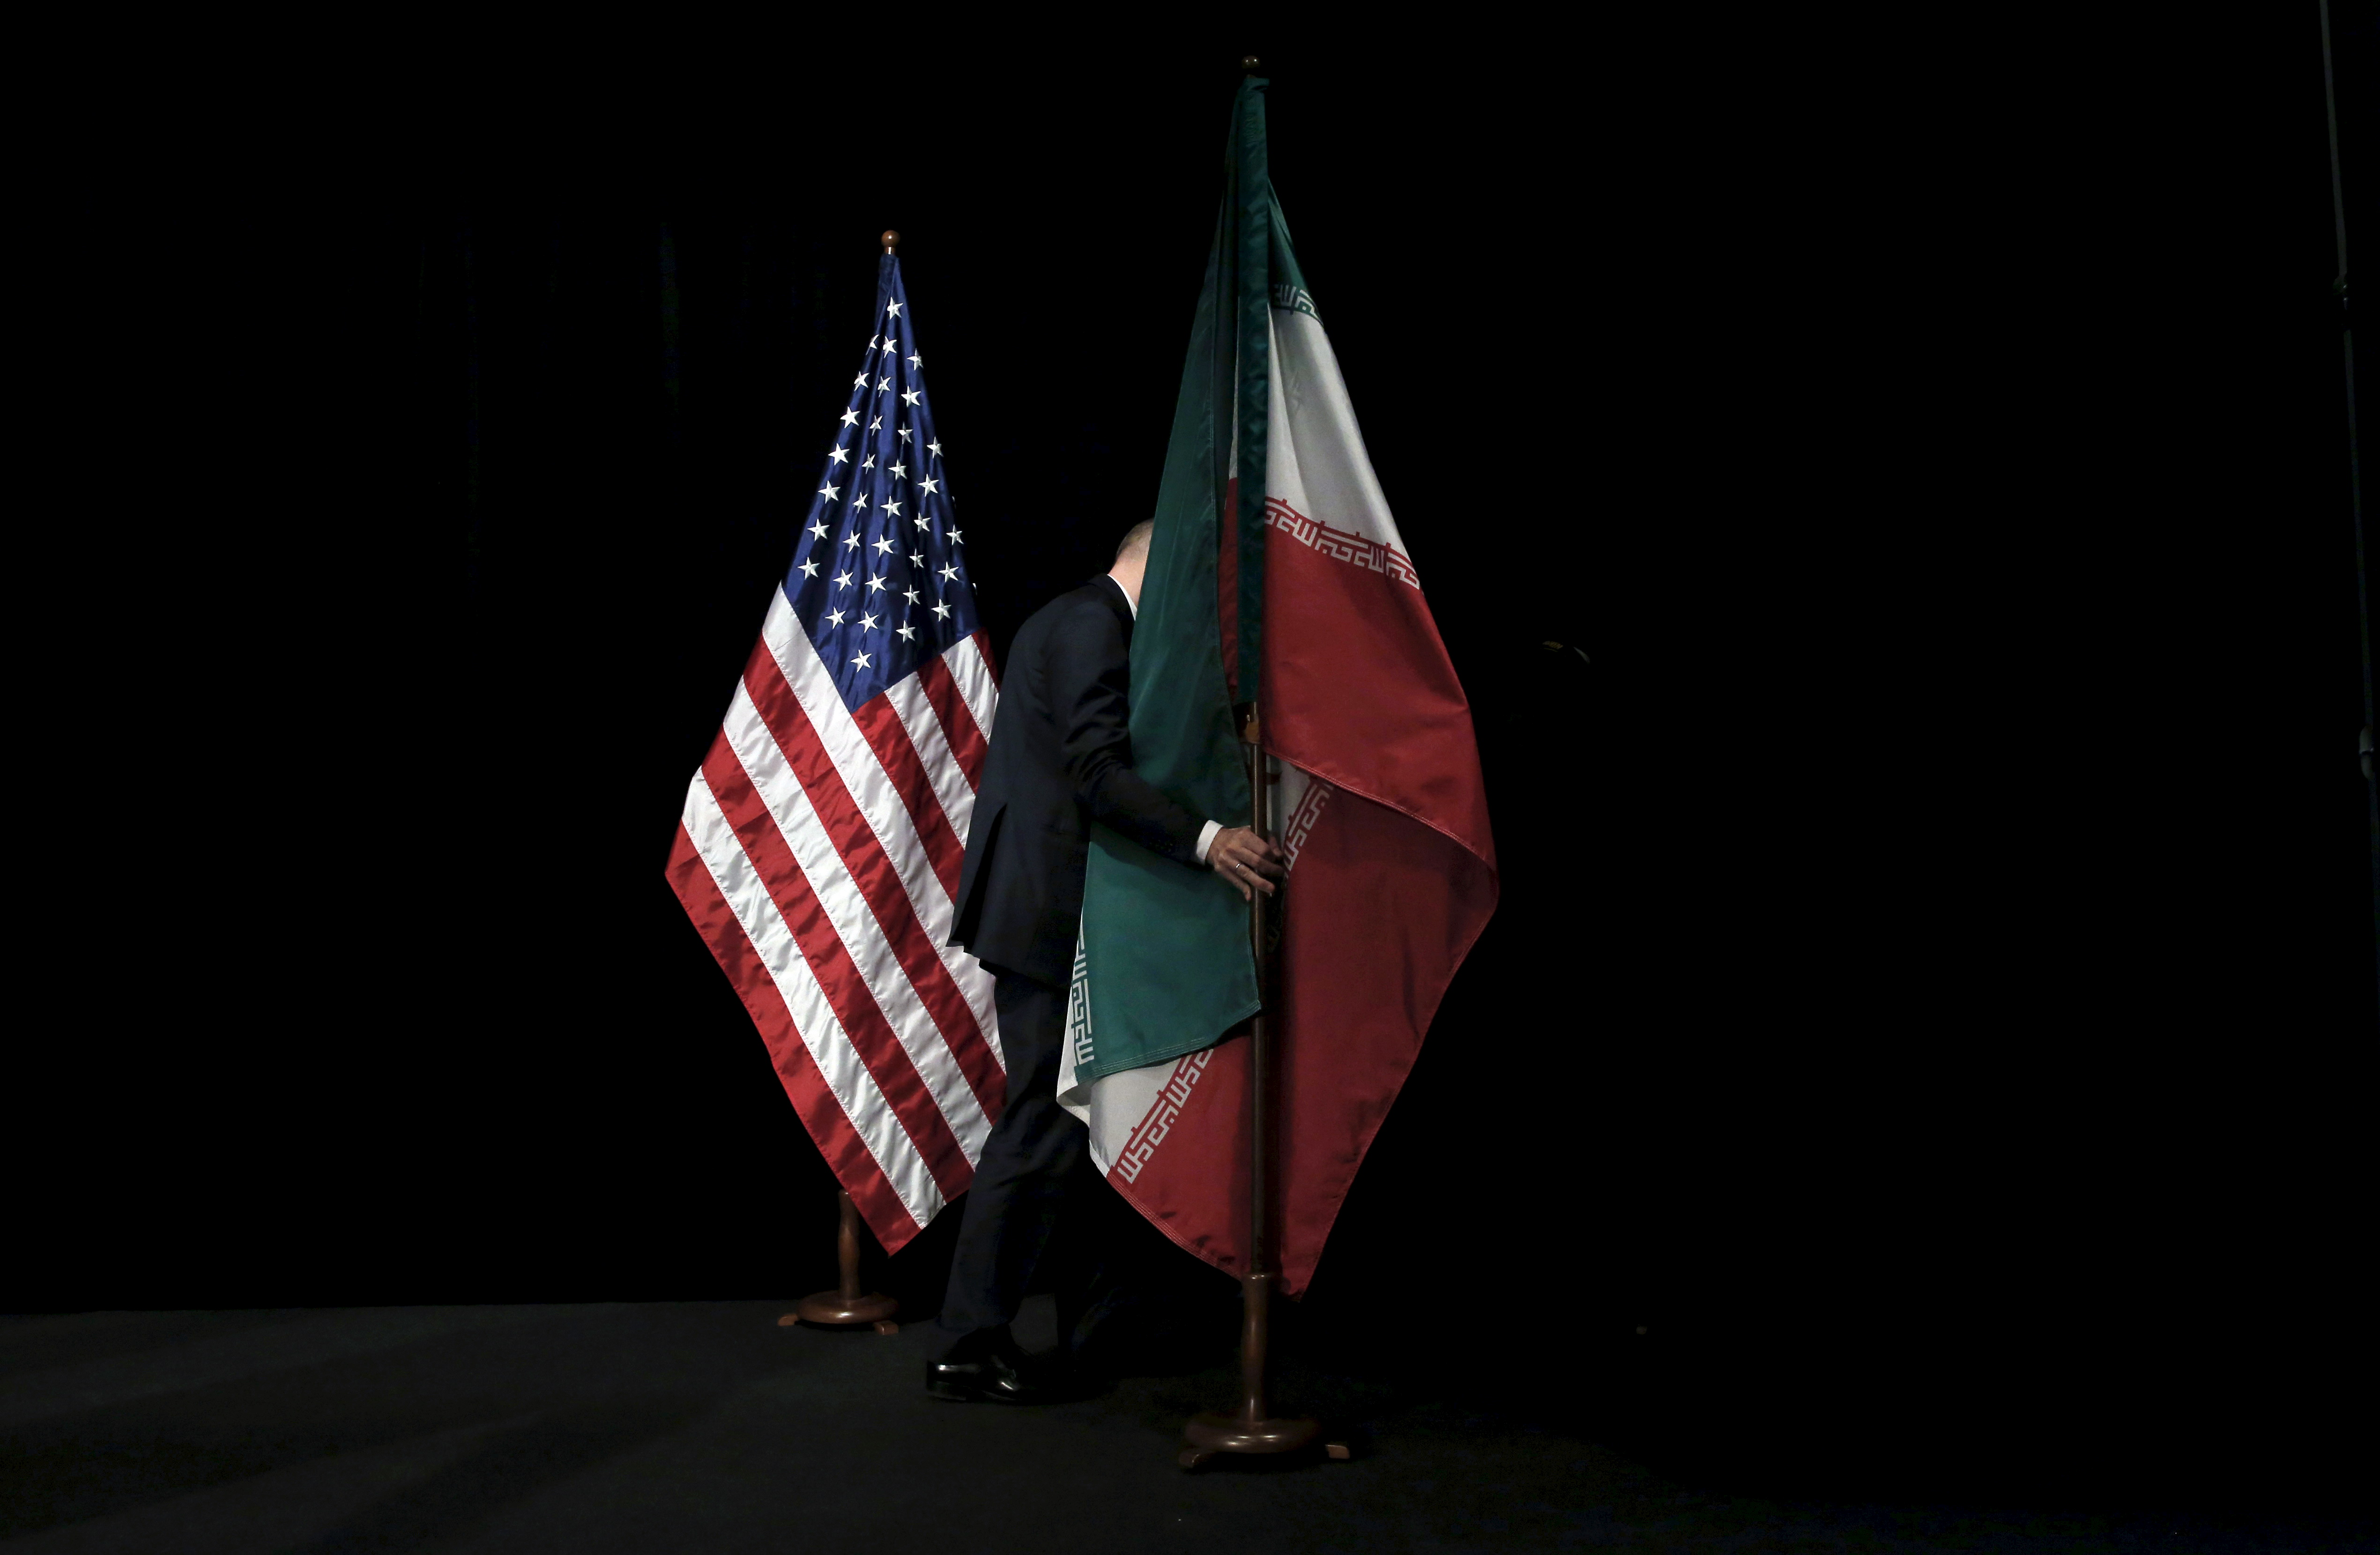 A staff member removes the Iranian flag from the stage after a group picture with foreign ministers and representatives of Unites States, Iran, China, Russia, Britain, Germany, France and the European Union during the Iran nuclear talks at the Vienna International Center in Vienna on July 14, 2015.